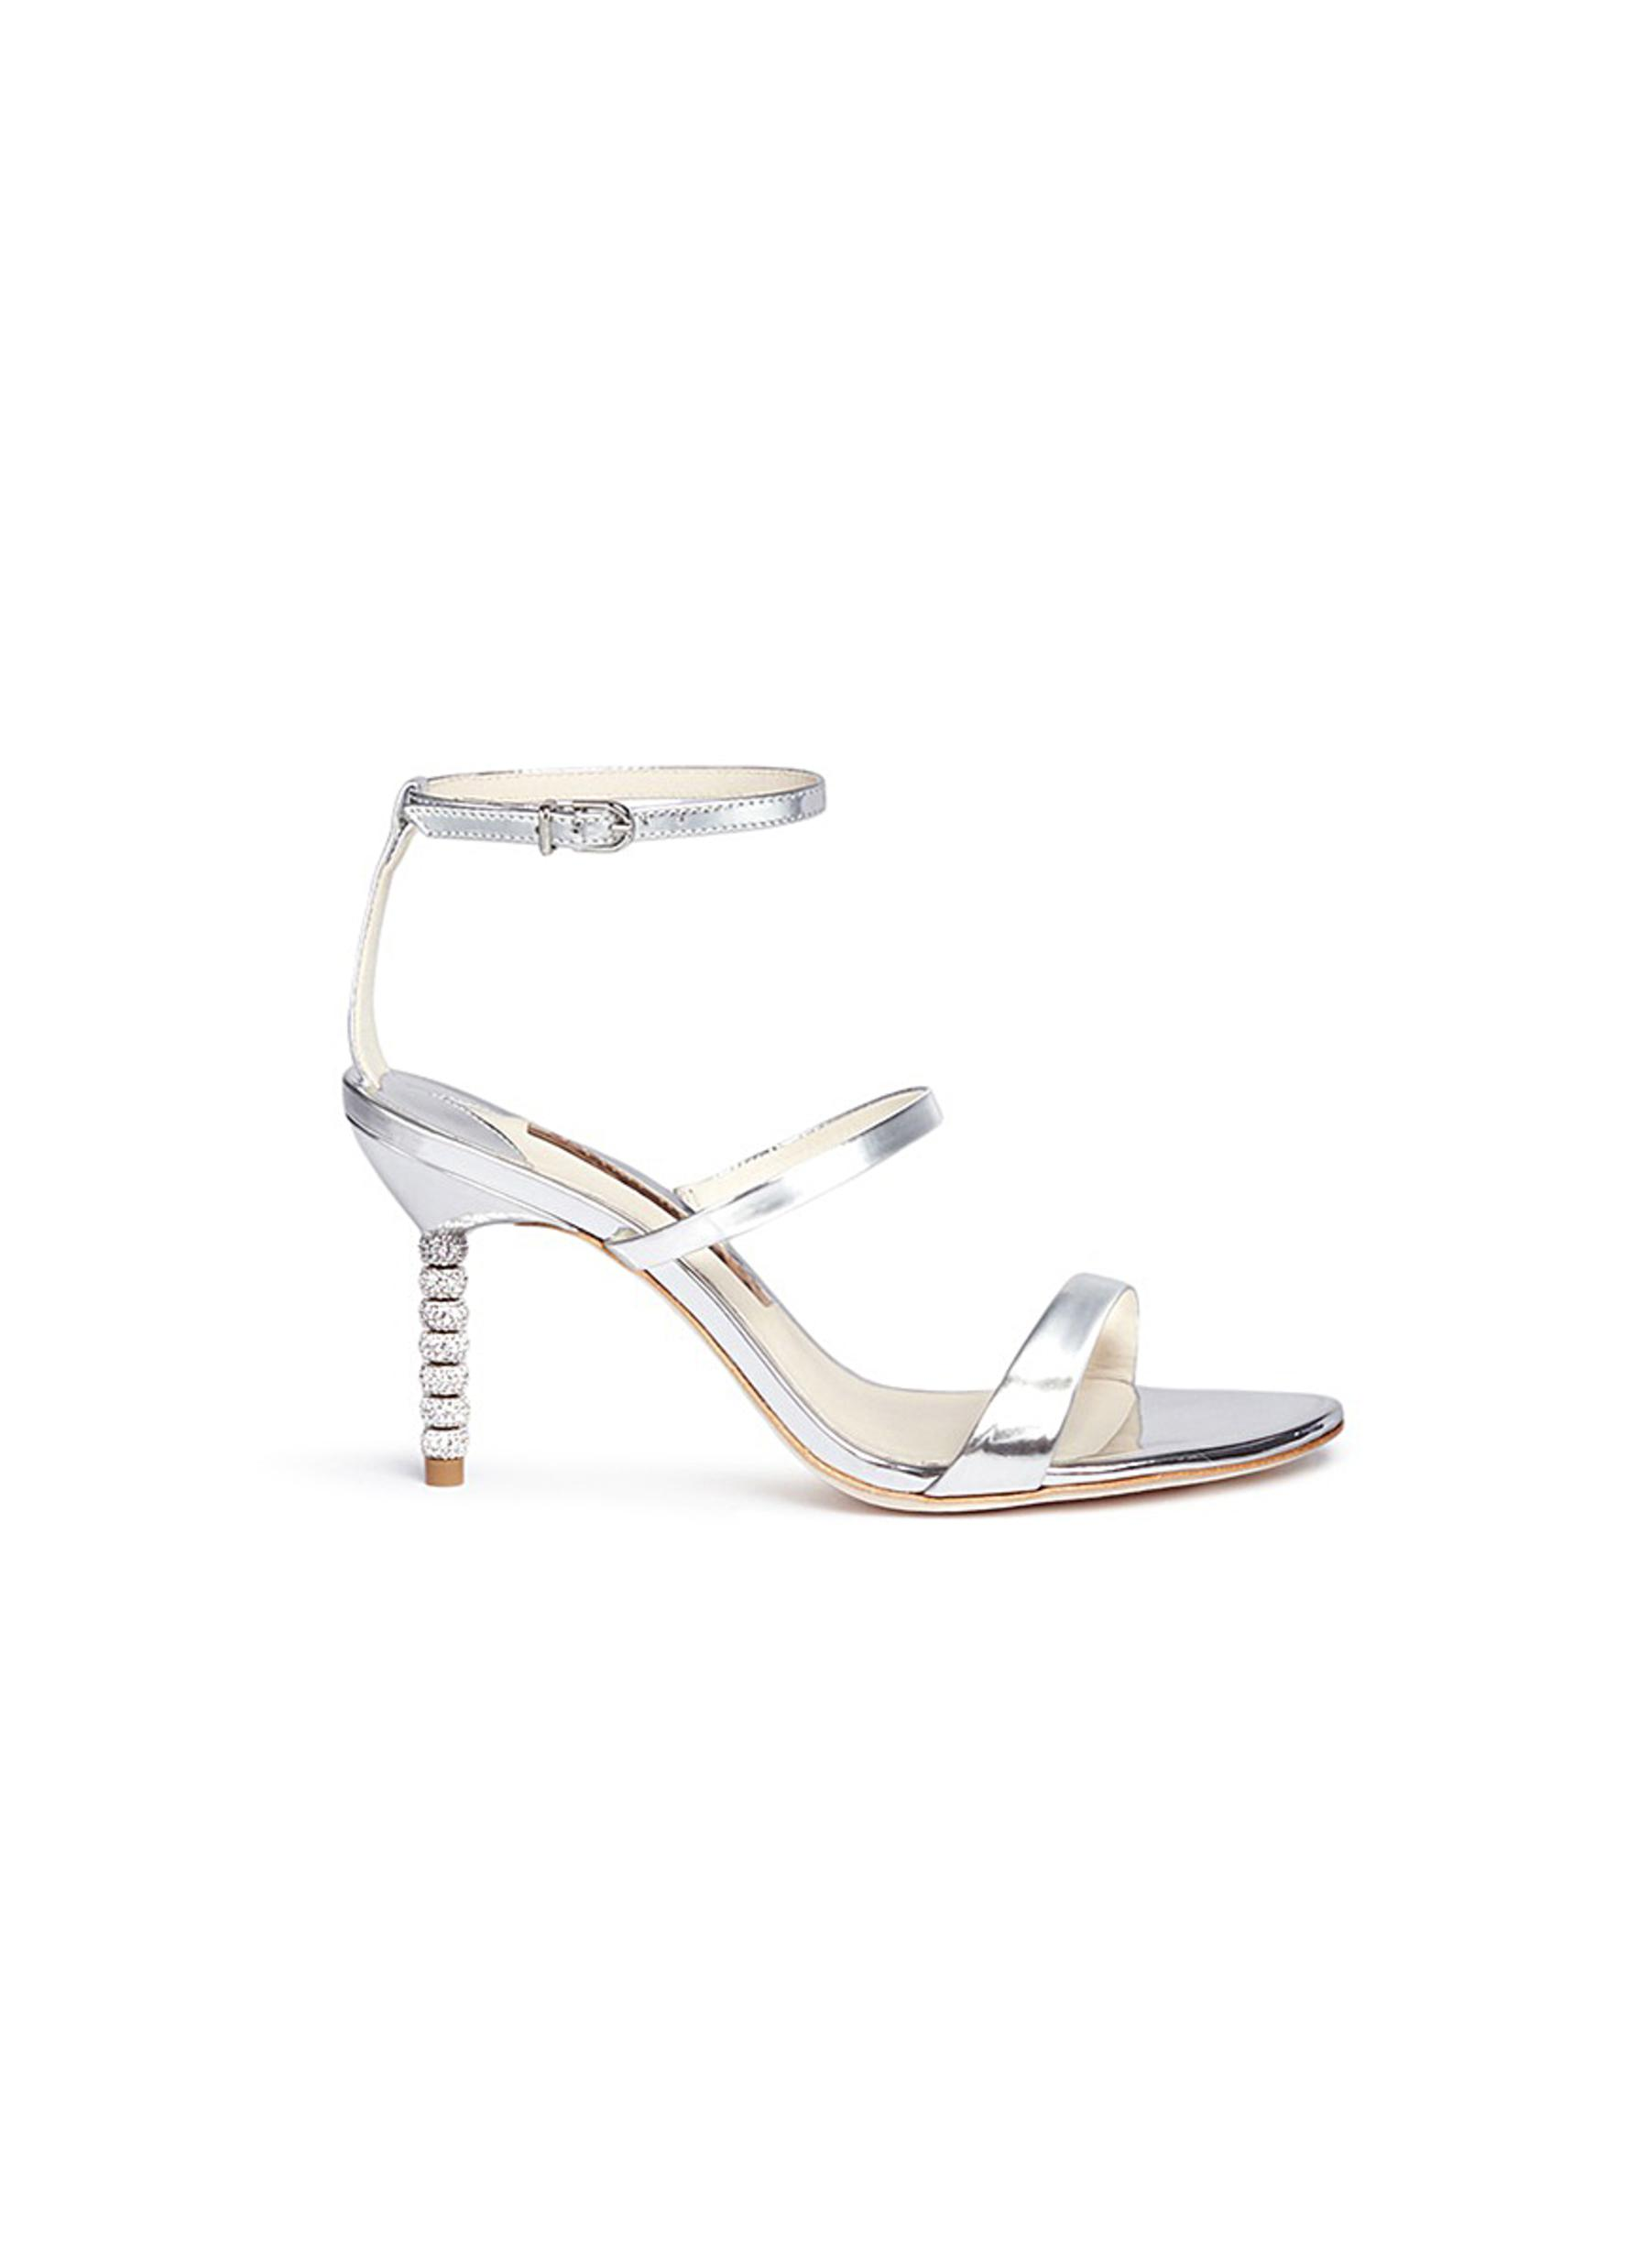 Sophia Webster High Heels Rosalind crystal pavé bead heel mirror leather sandals